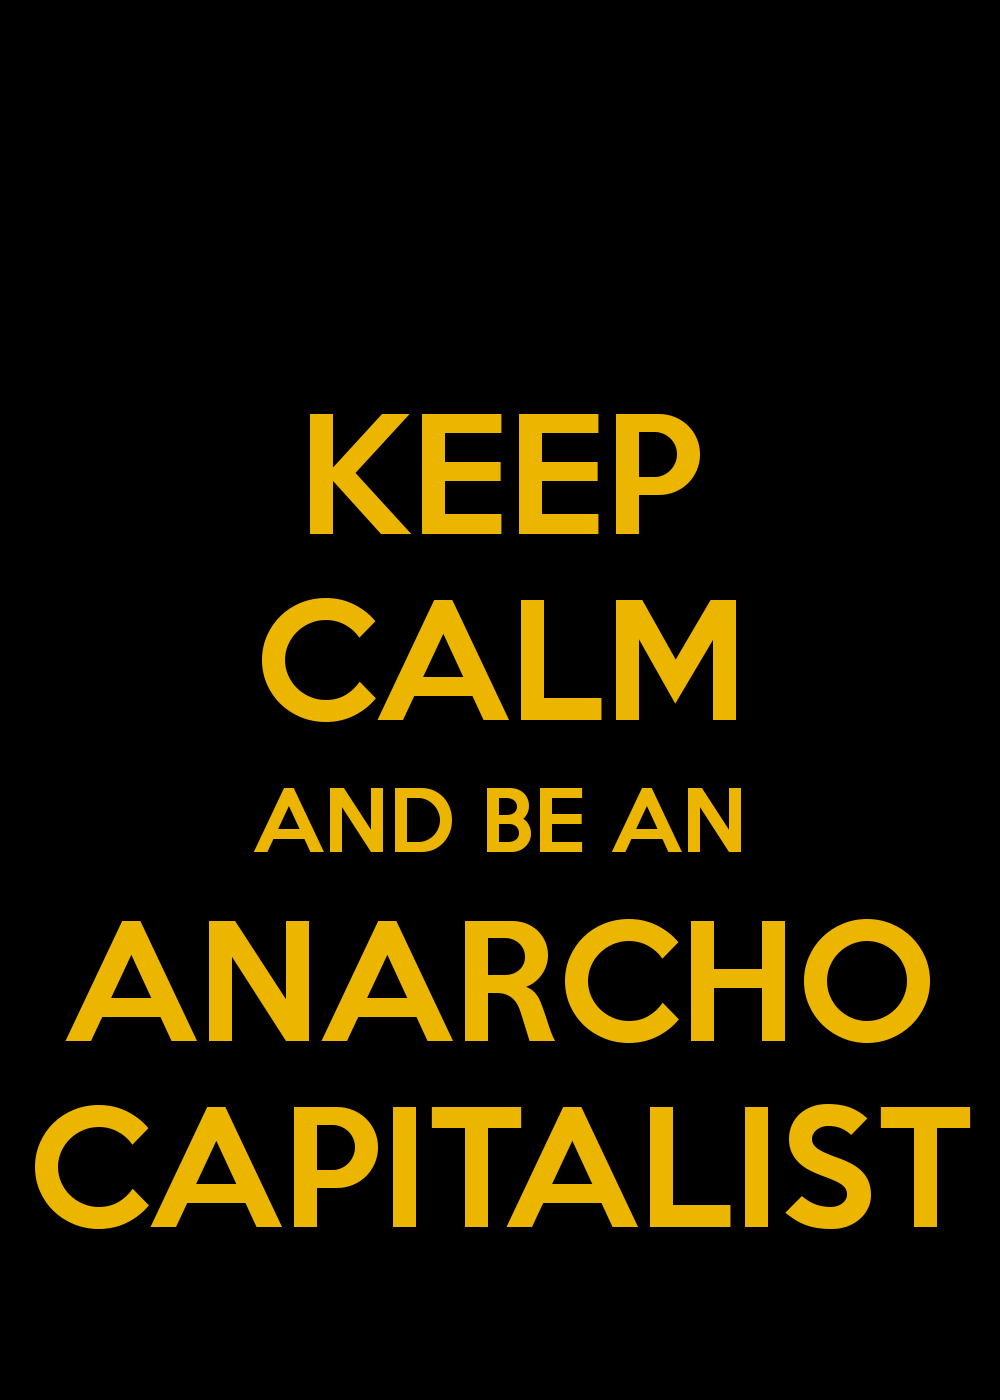 keep-calm-and-be-an-anarcho-capitalist-3